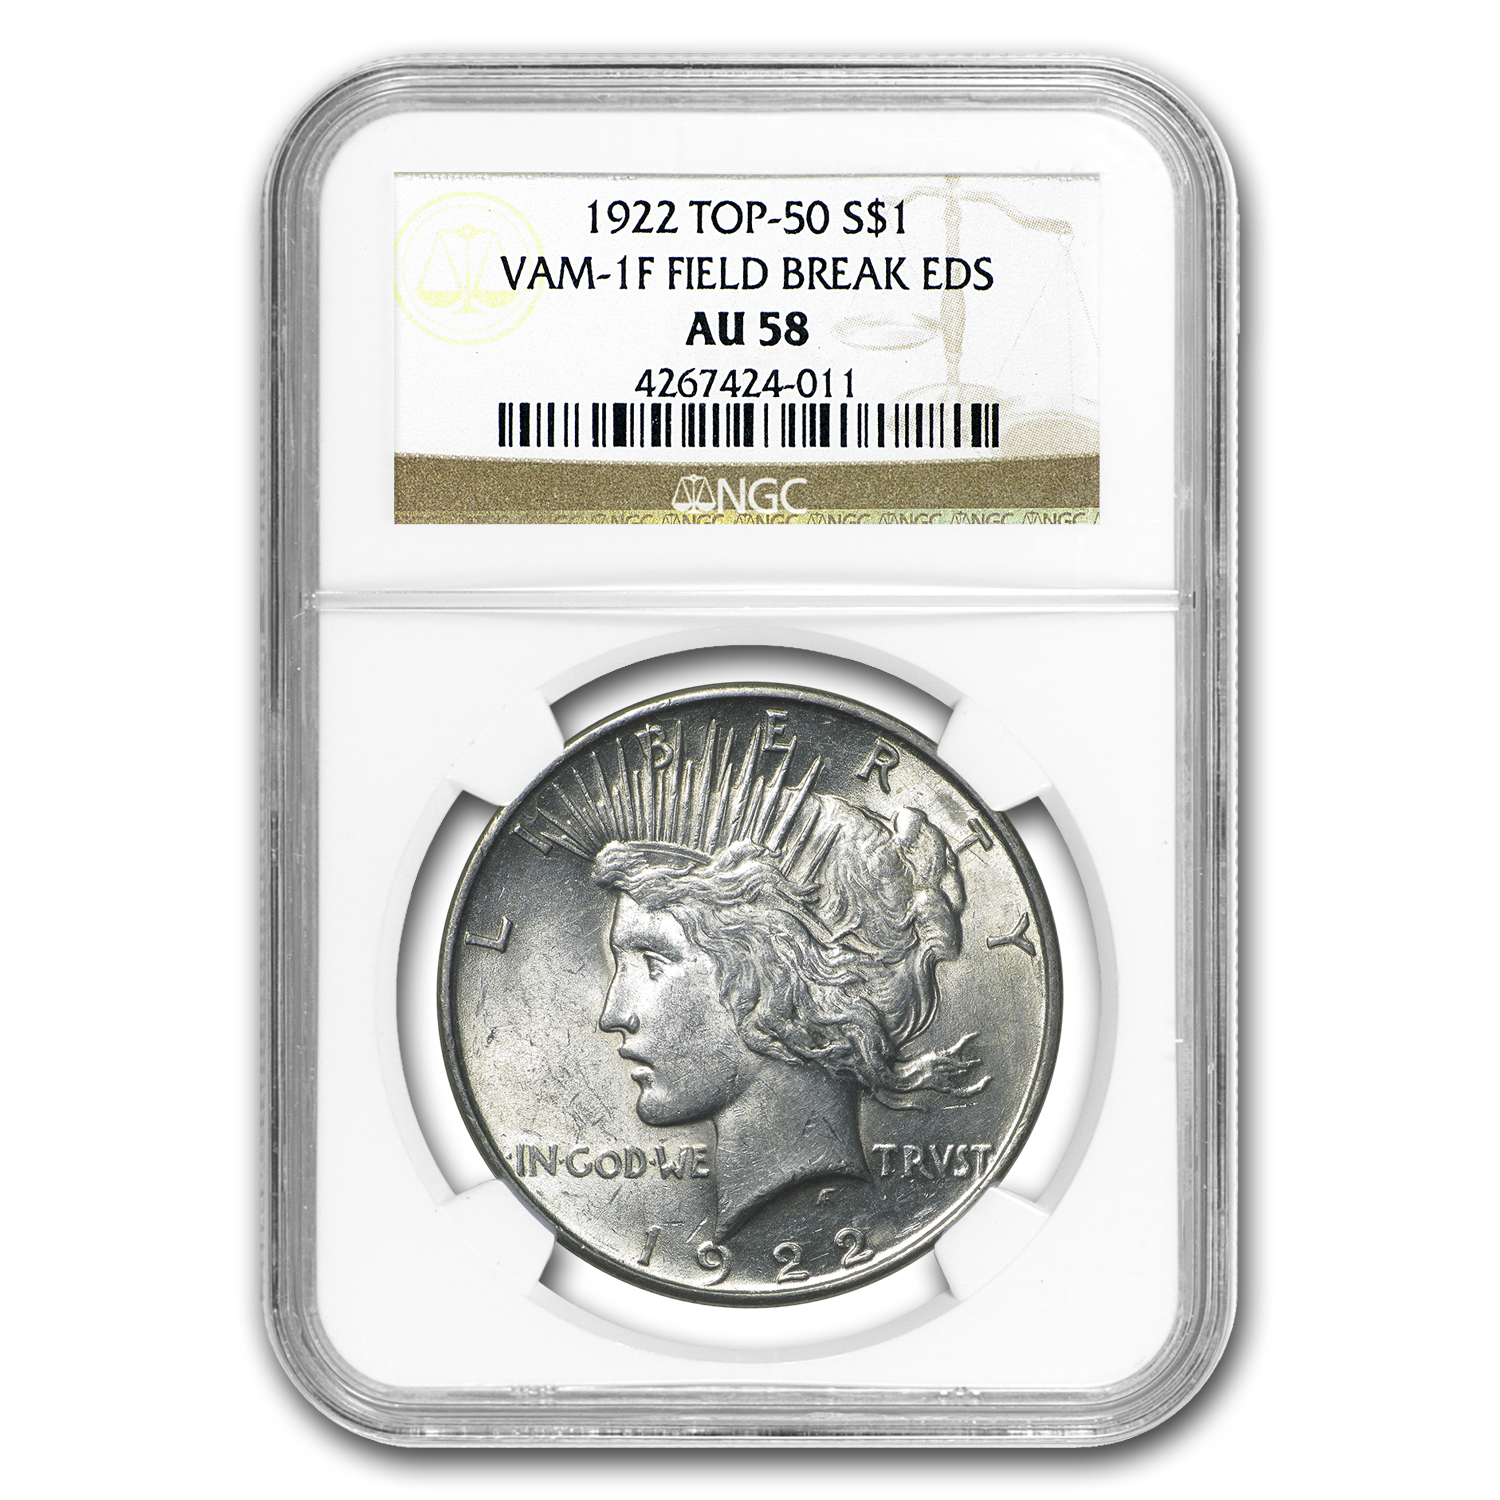 1922 Peace Dollar AU-58 NGC (VAM-1F EDS Field Die Break, Top-50)